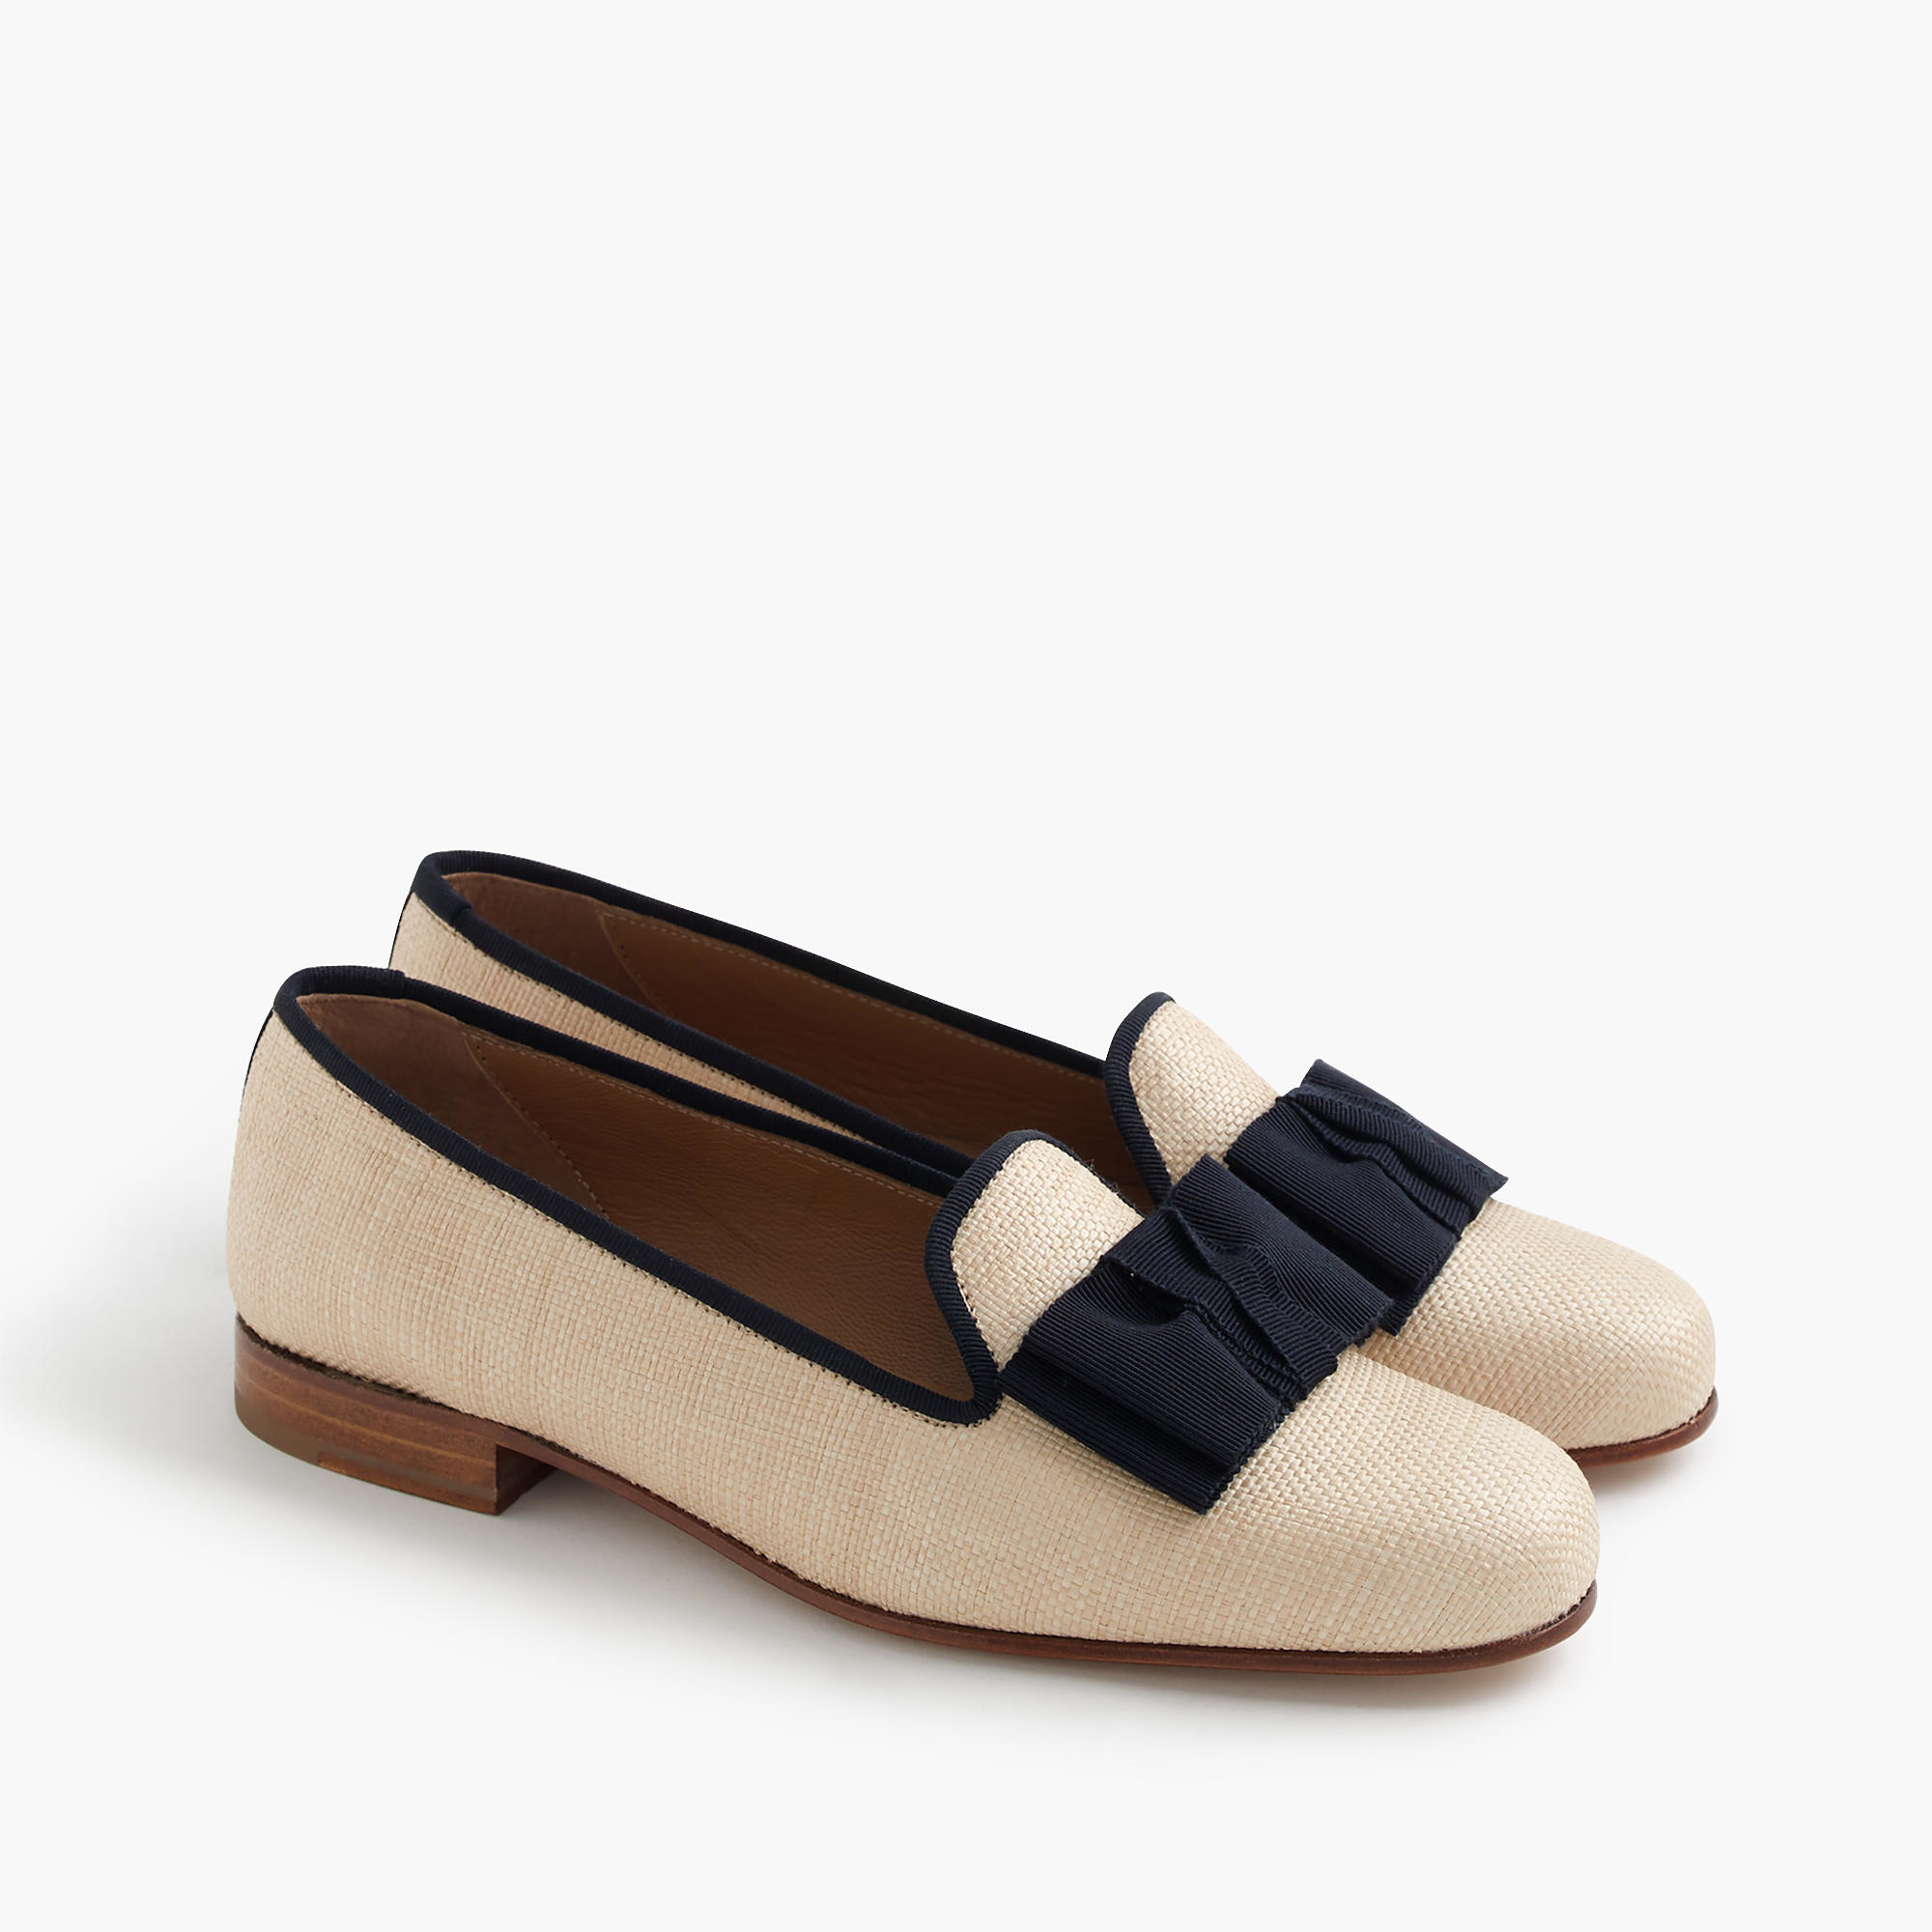 J crew slippers 28 images s suede shearling scuffs for J crew bedroom slippers